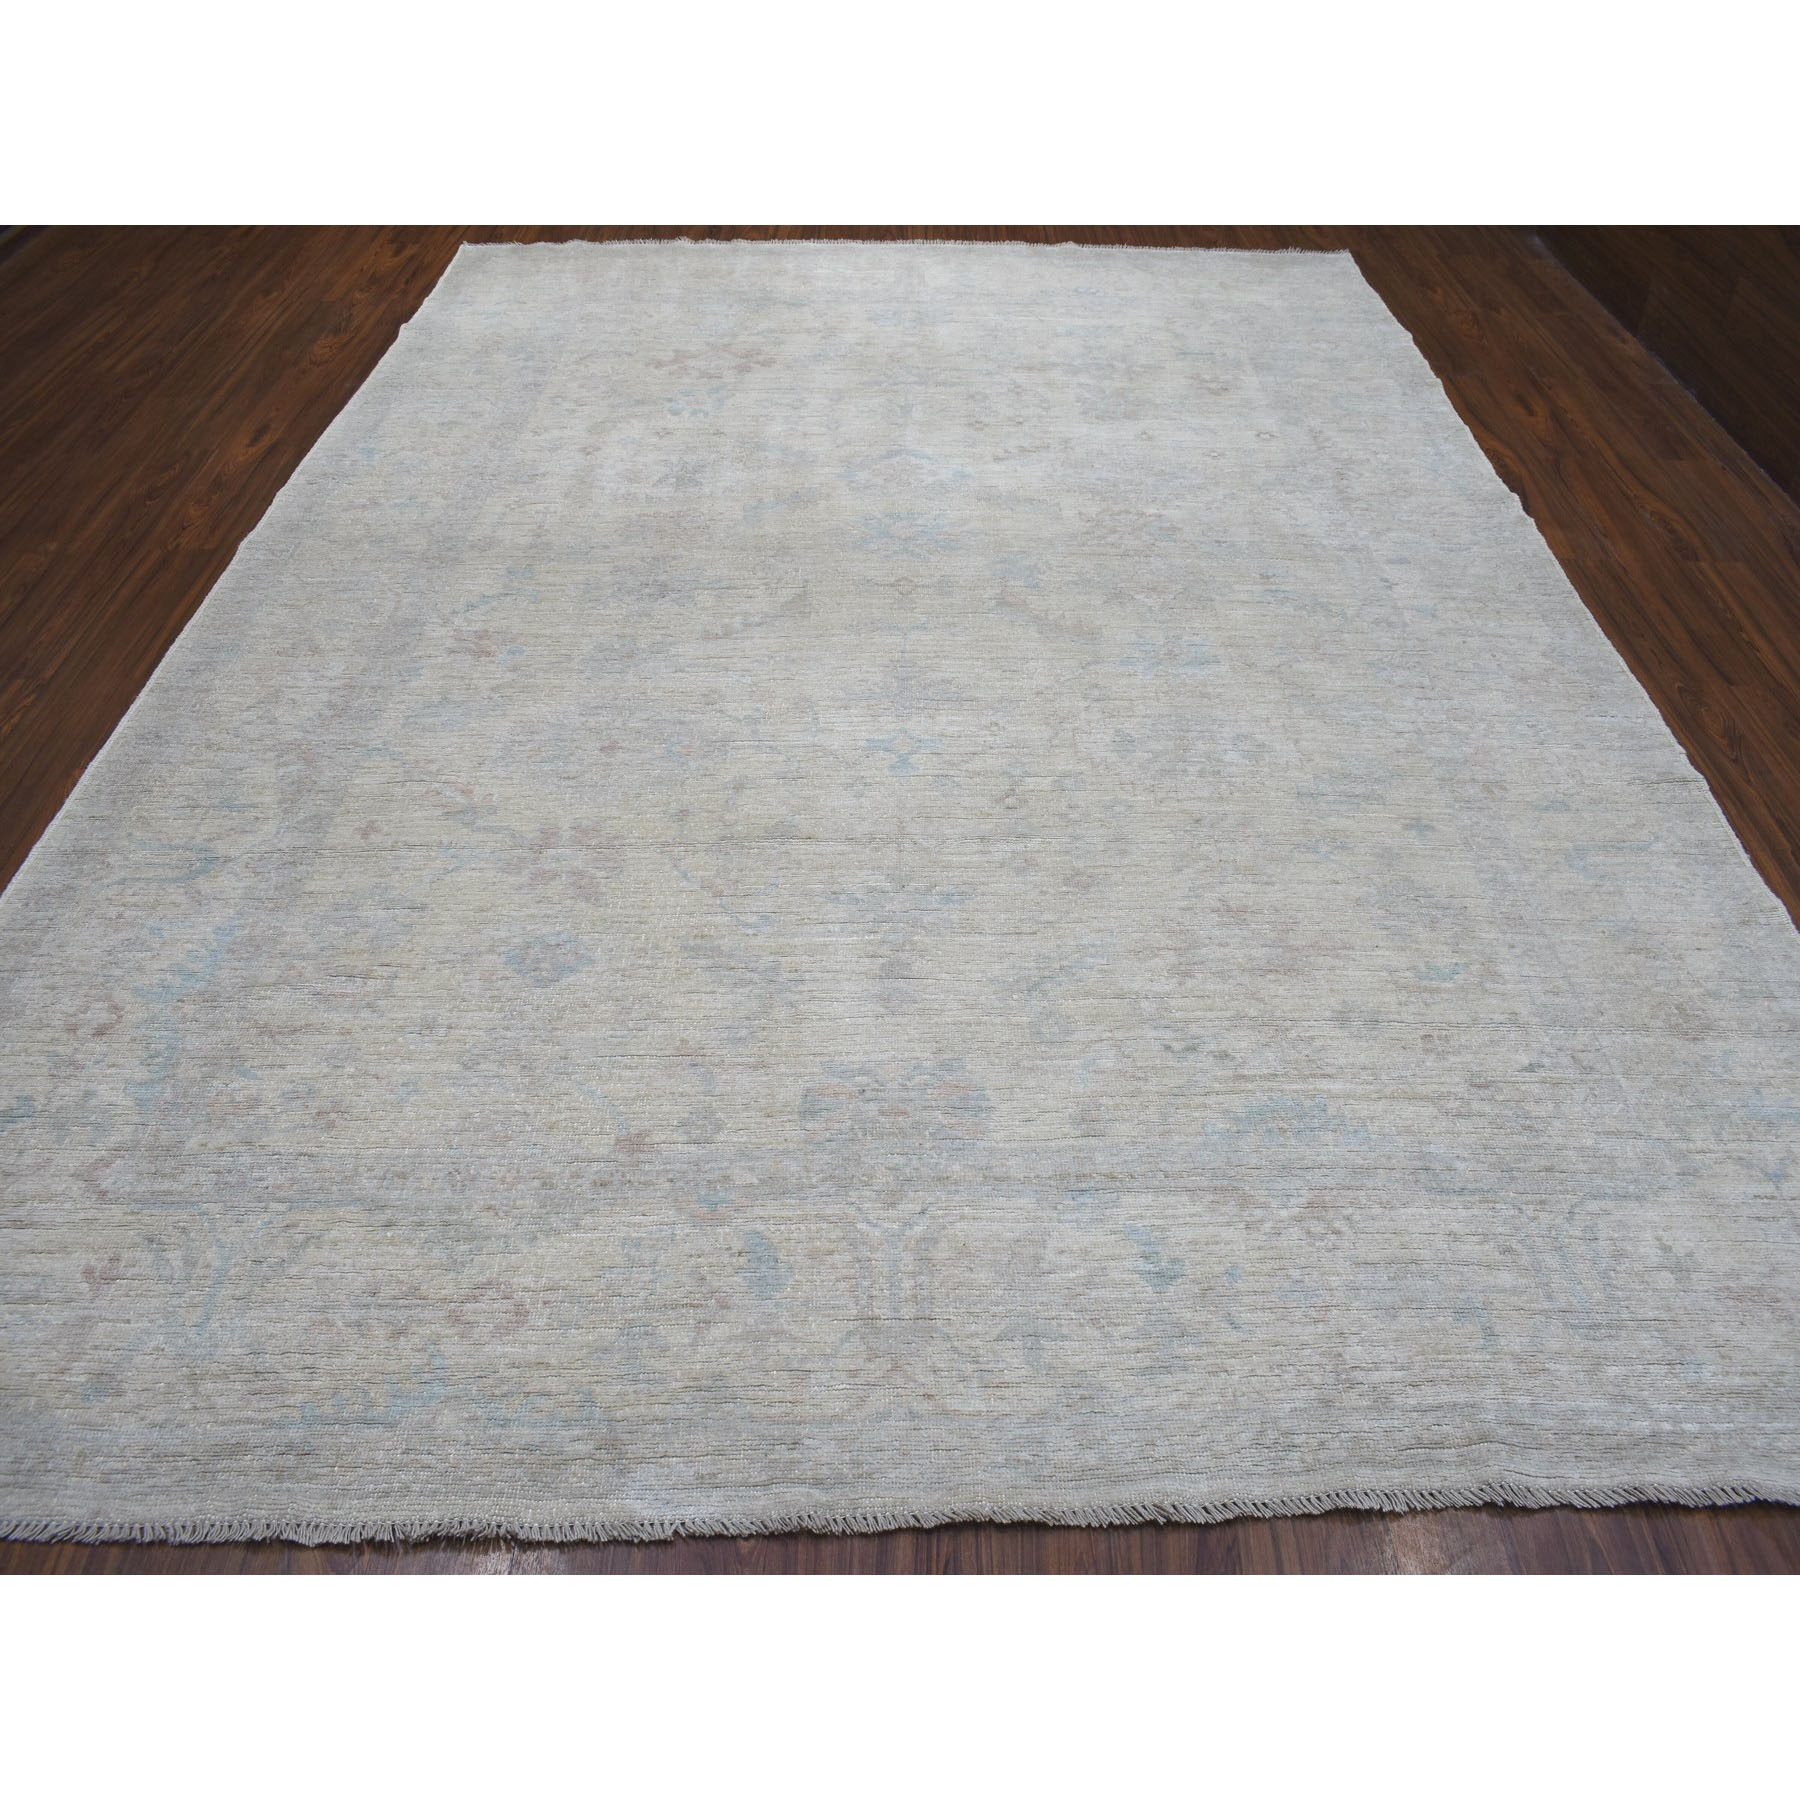 """9'3""""x12'3"""" Ivory Angora Oushak With Soft Velvety Wool Hand Knotted Oriental Rug"""